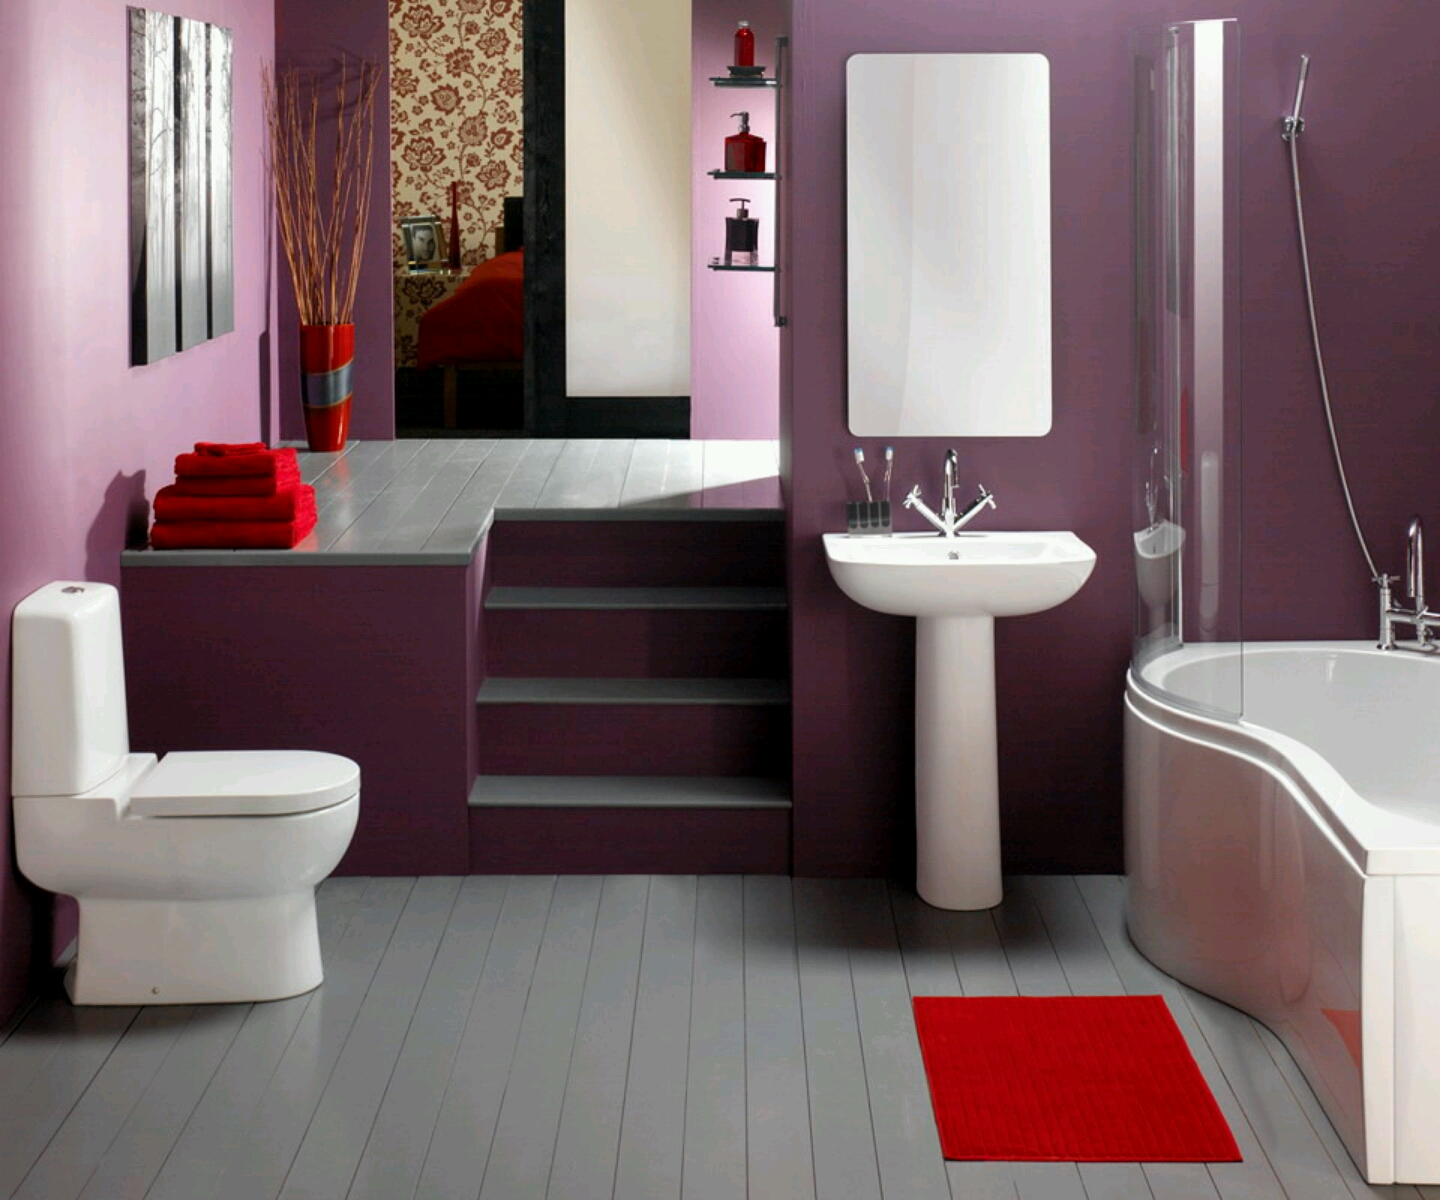 New home designs latest luxury modern bathrooms designs for Bathroom decoration ideas